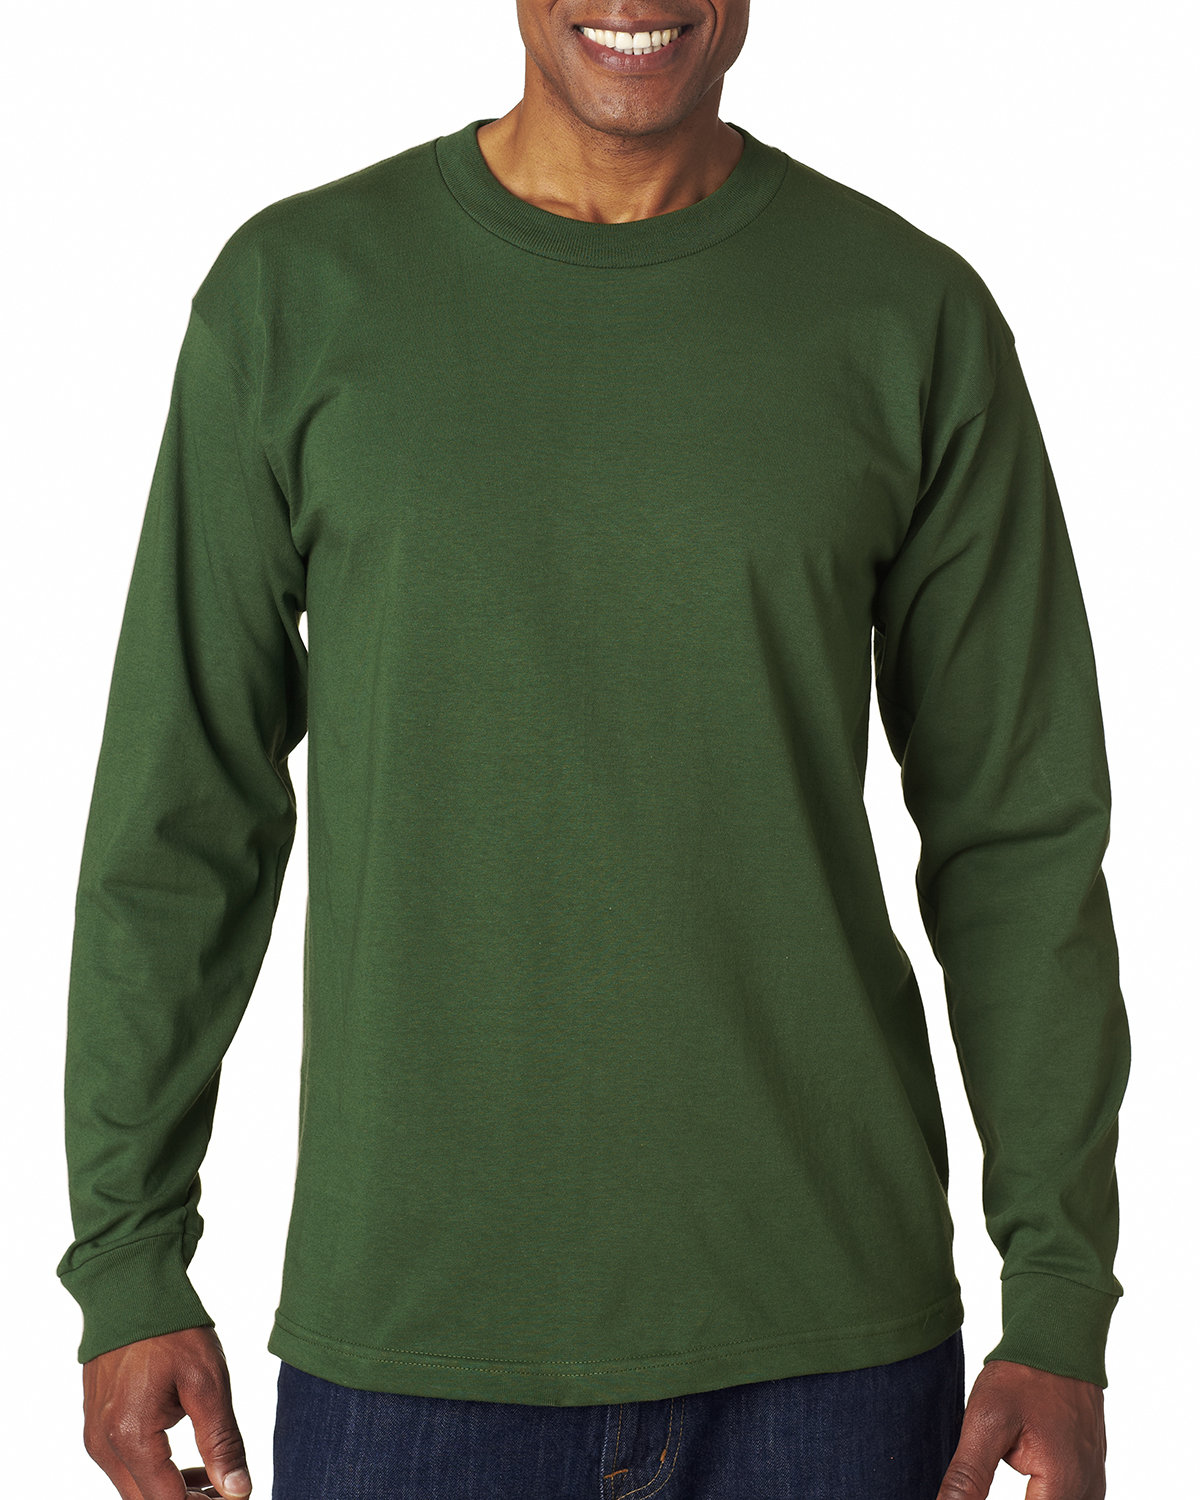 Bayside Adult 6.1 oz., 100% Cotton Long Sleeve T-Shirt FOREST GREEN